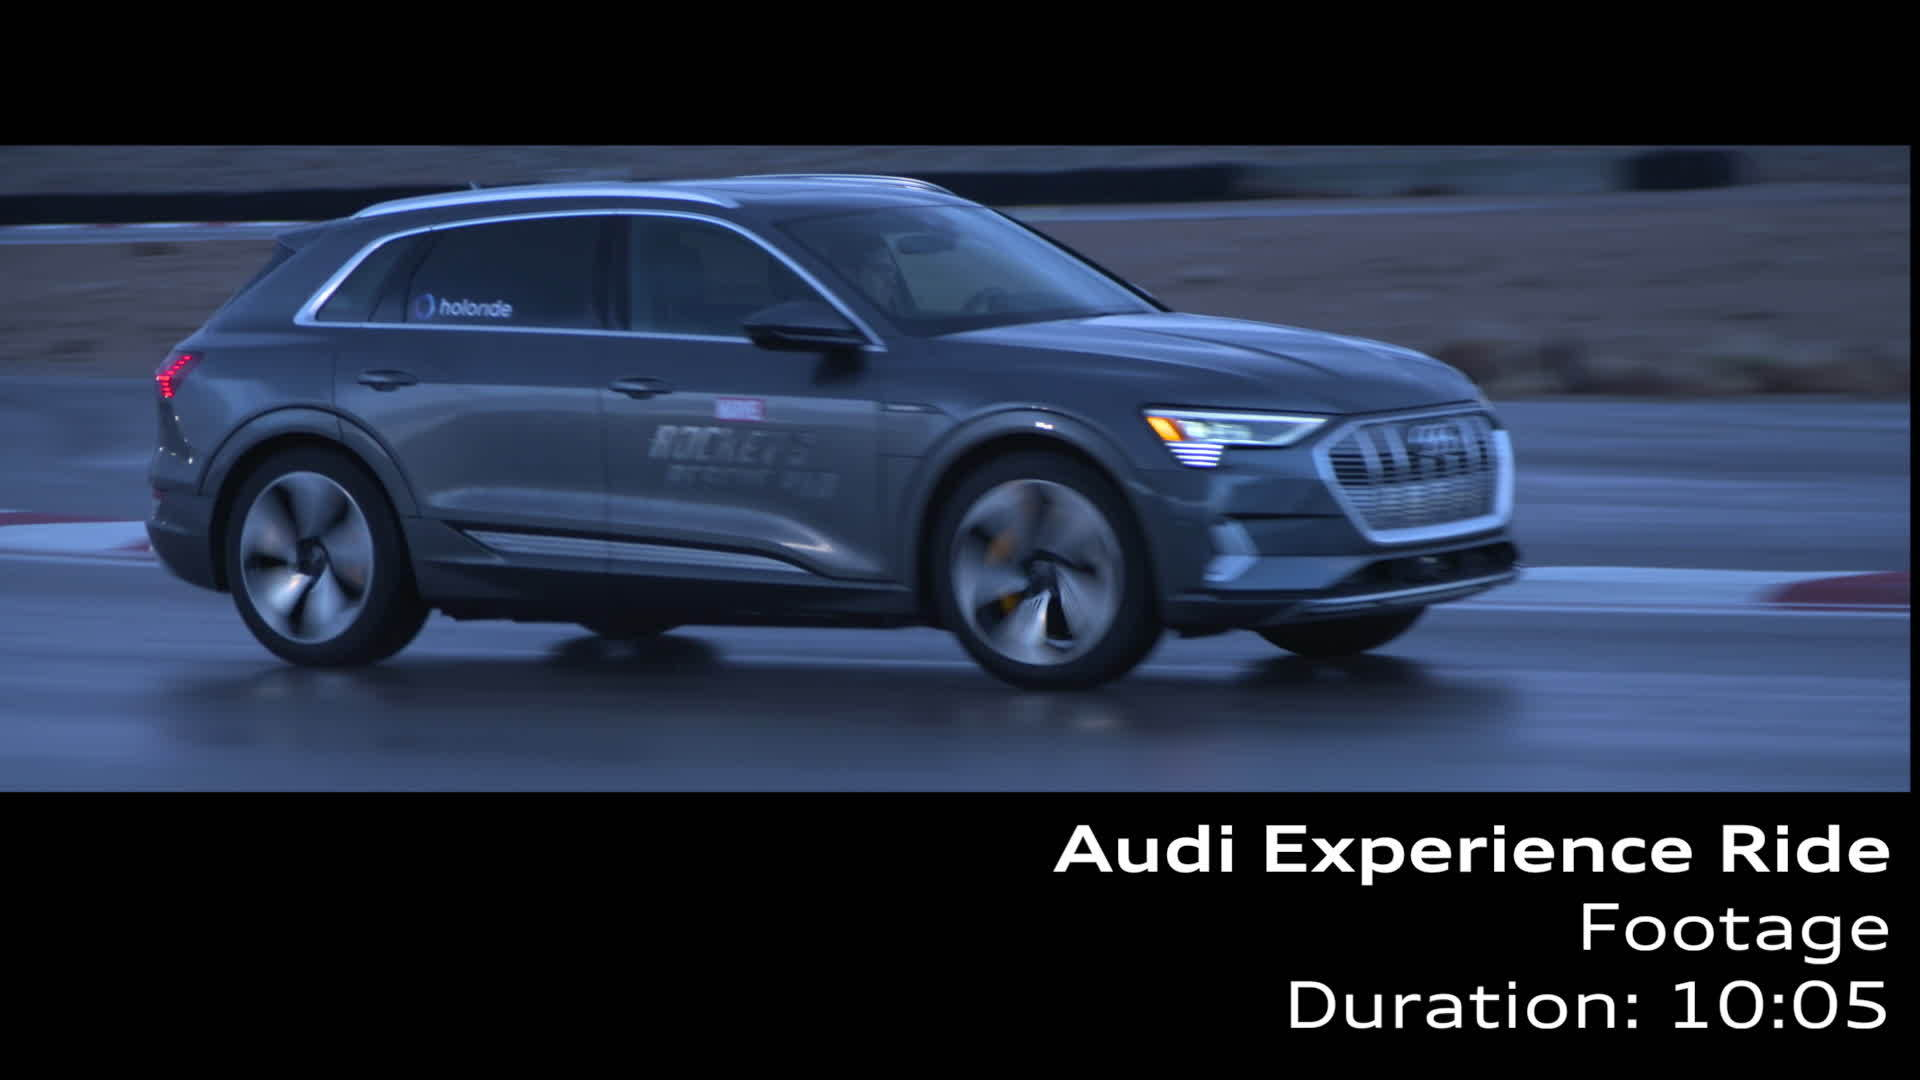 Footage Audi Experience Ride